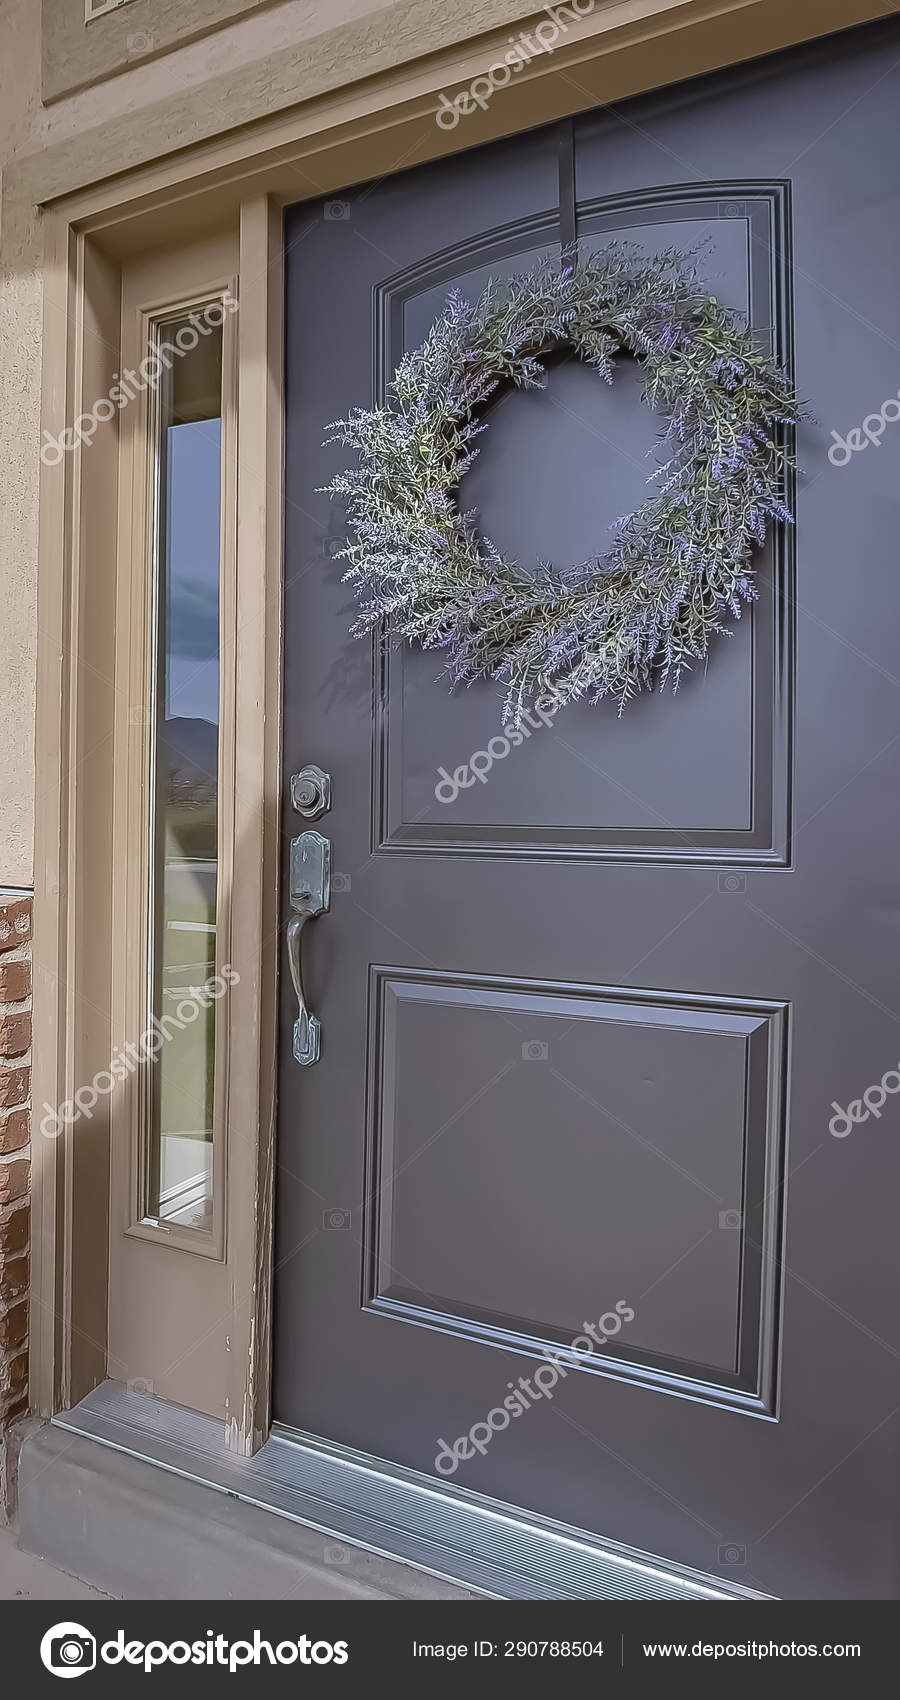 Vertical Porch And Front Door With Wreath And Sidelights